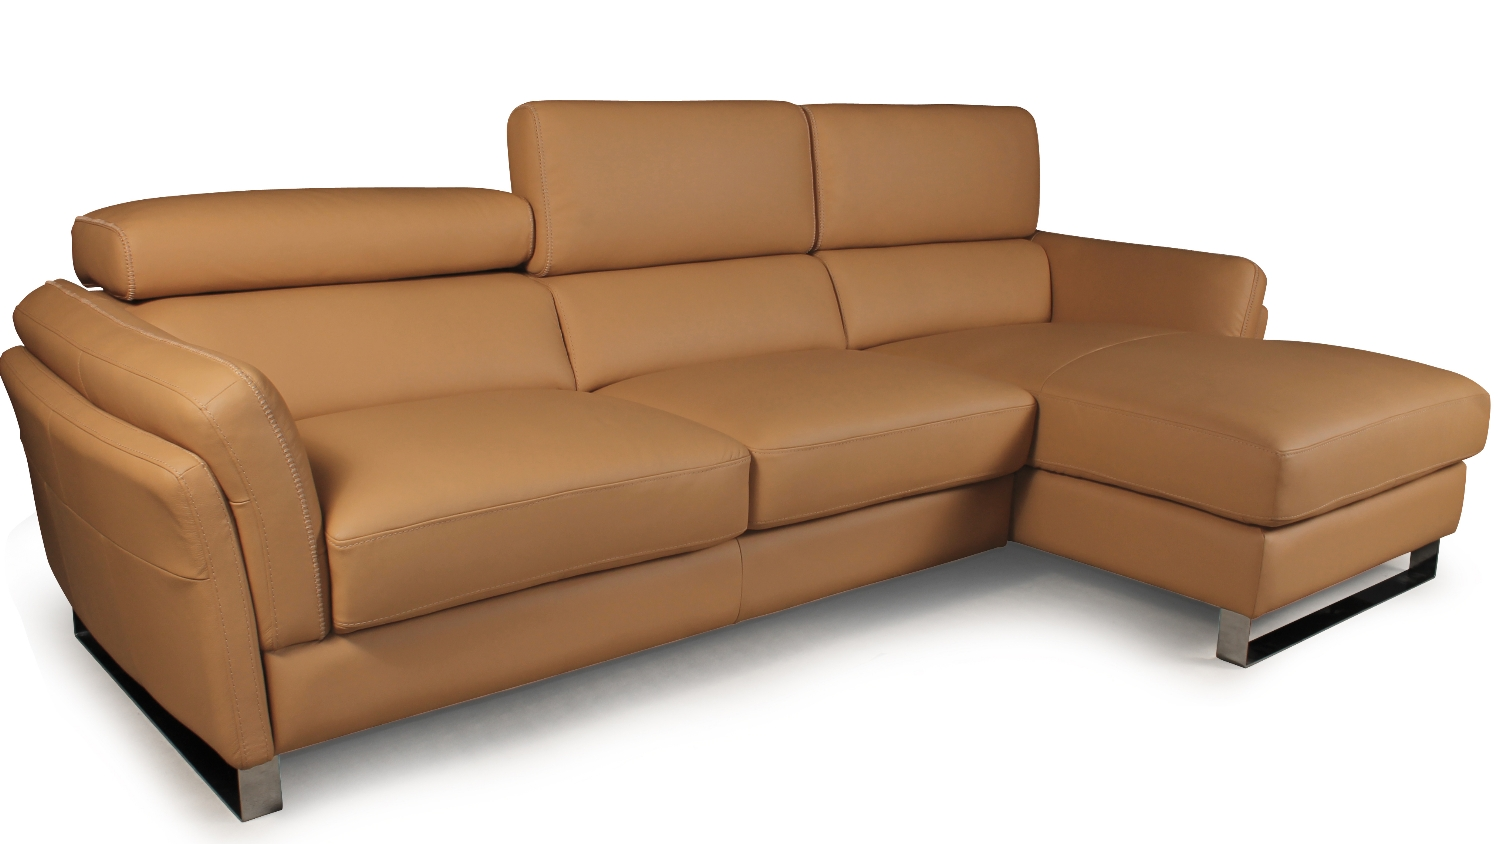 Harper 3 Seater Sofa With Chaise Lounge Harvey Norman Singapore